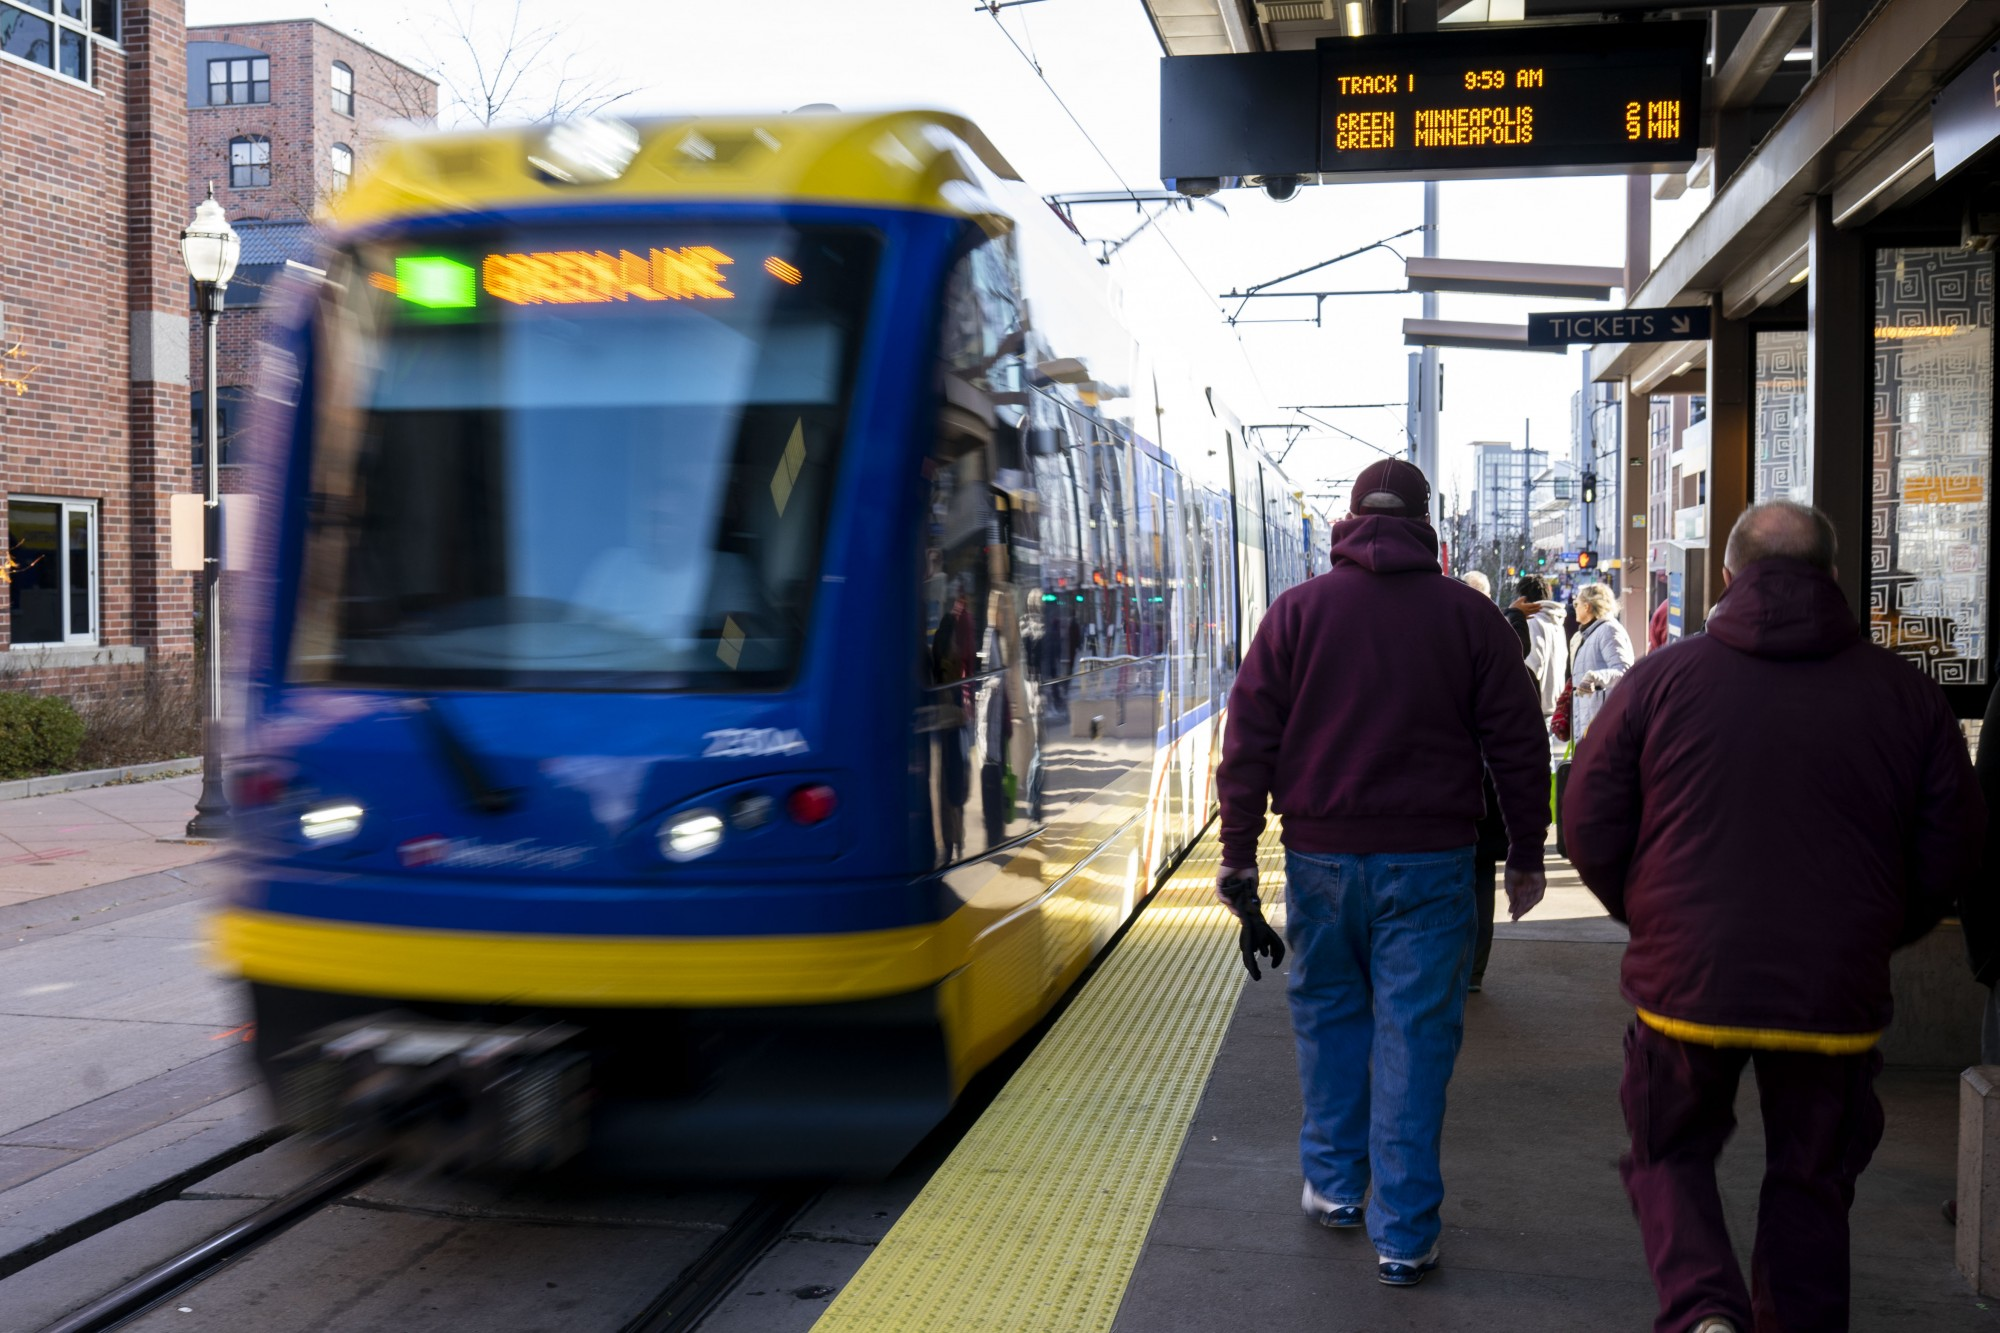 The Metro Green Line pulls into the East Bank Station on Saturday, Nov. 9.